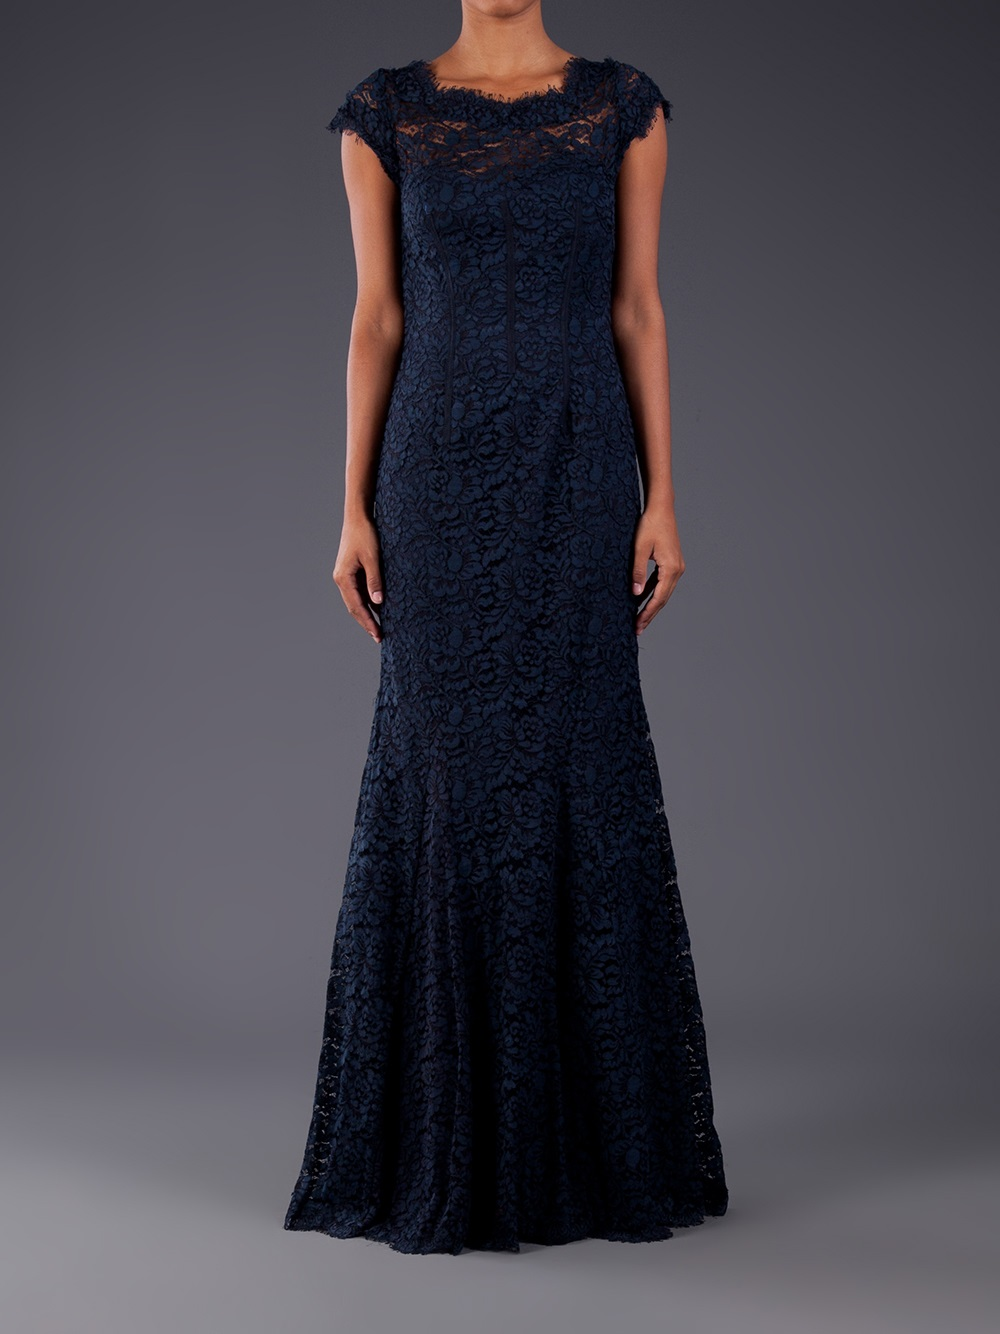 Monique Lhuillier Navy Lace Dress – fashion dresses